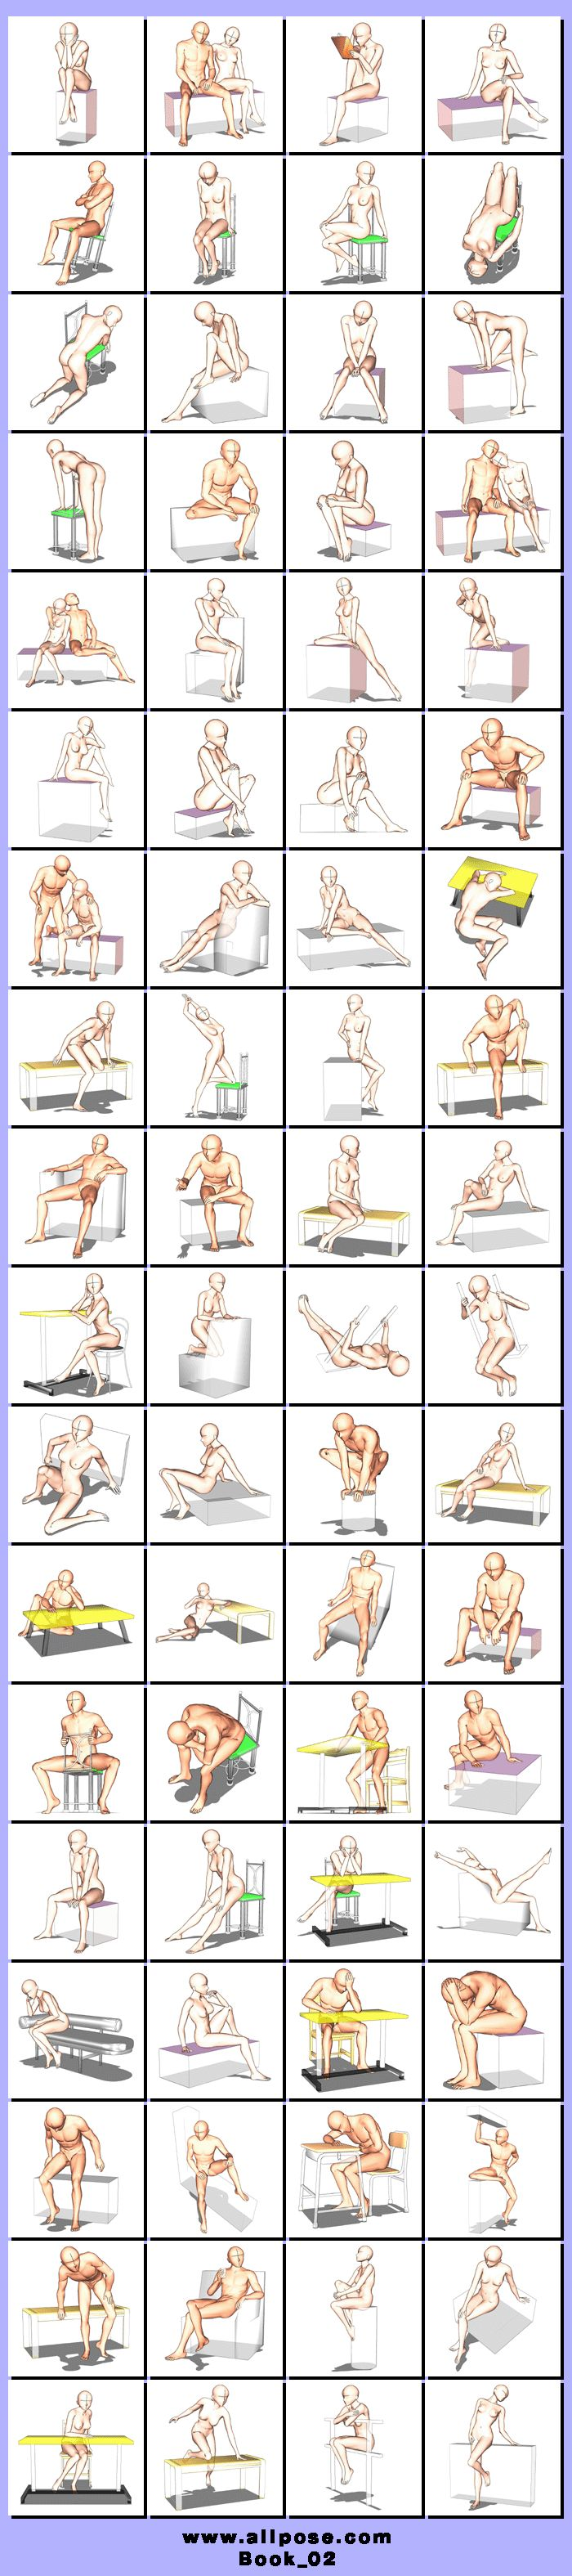 #Poses Chair http://allpose.com